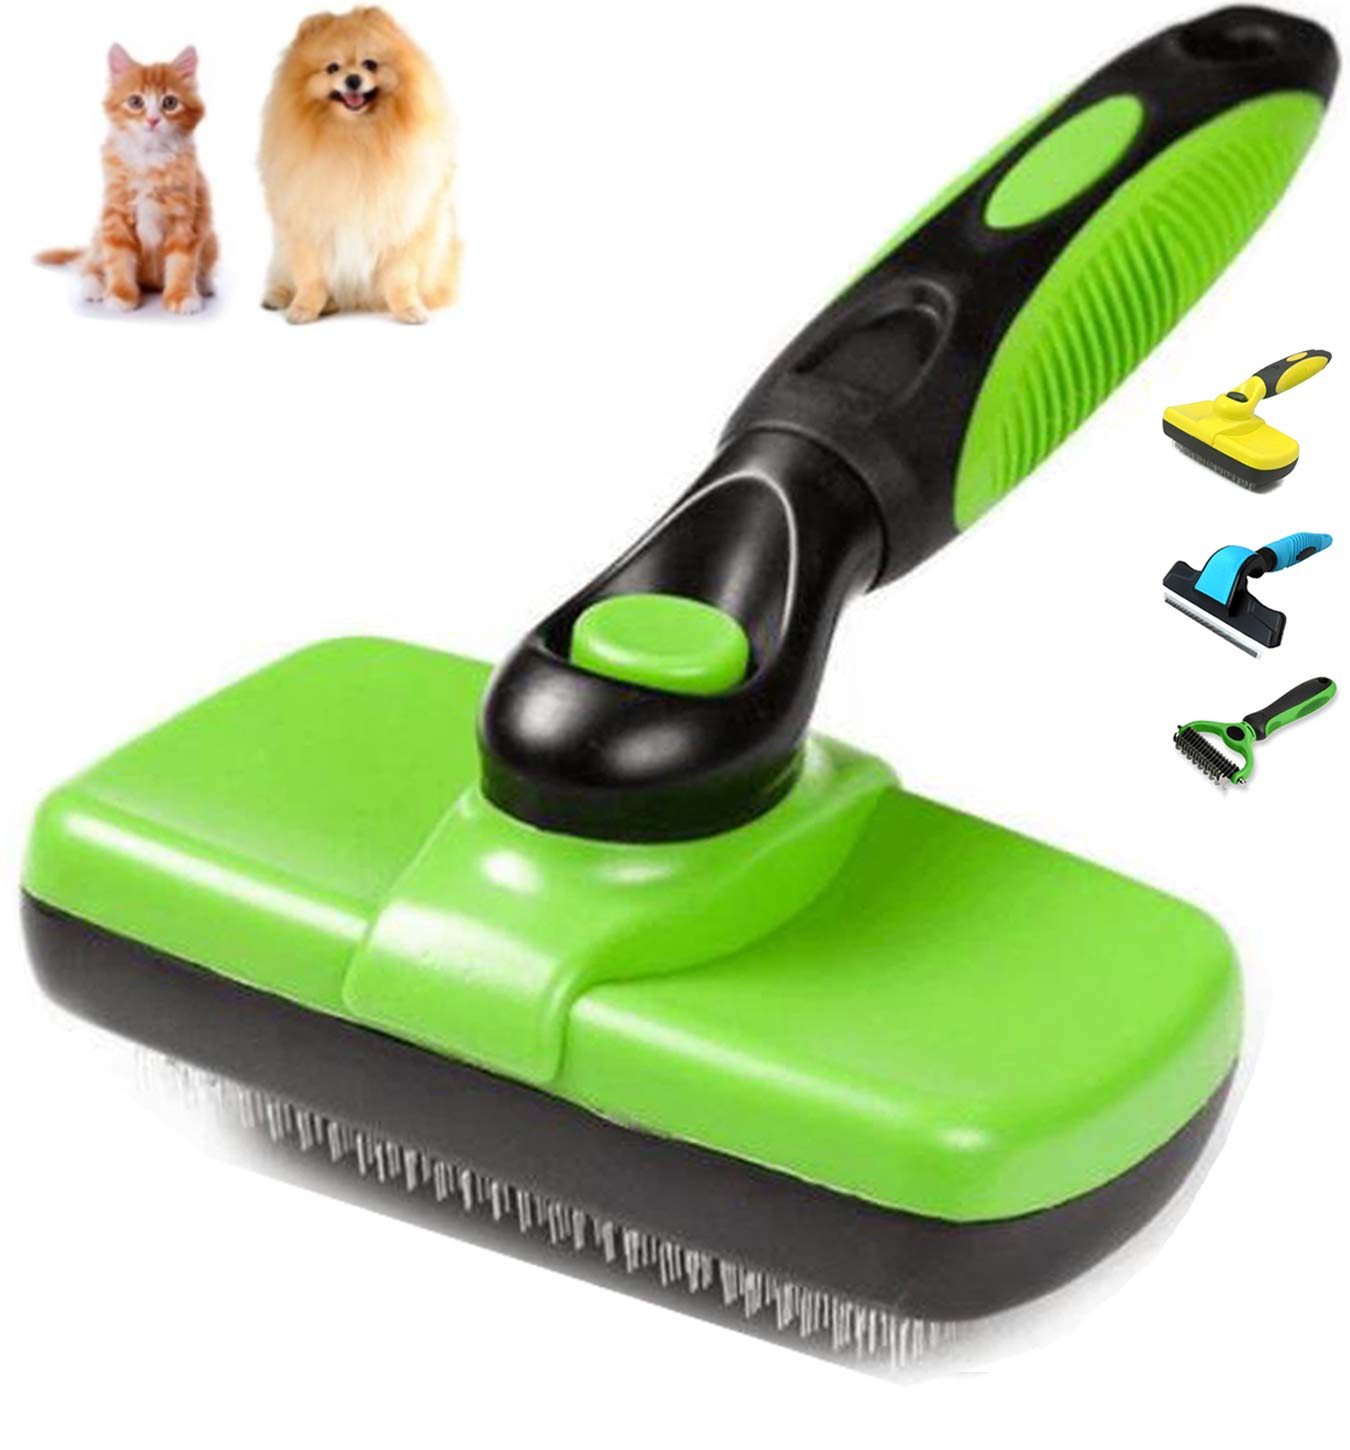 Shedding Tools, Self Cleaning Slicker Brush, Self Cleaning Slicker Brush for Dogs and Cats - Easy to Clean Pet Grooming Brush Removes Mats, Tangles, and Loose Hair- Suitable for Long or Short Hair GAUTERF D9901